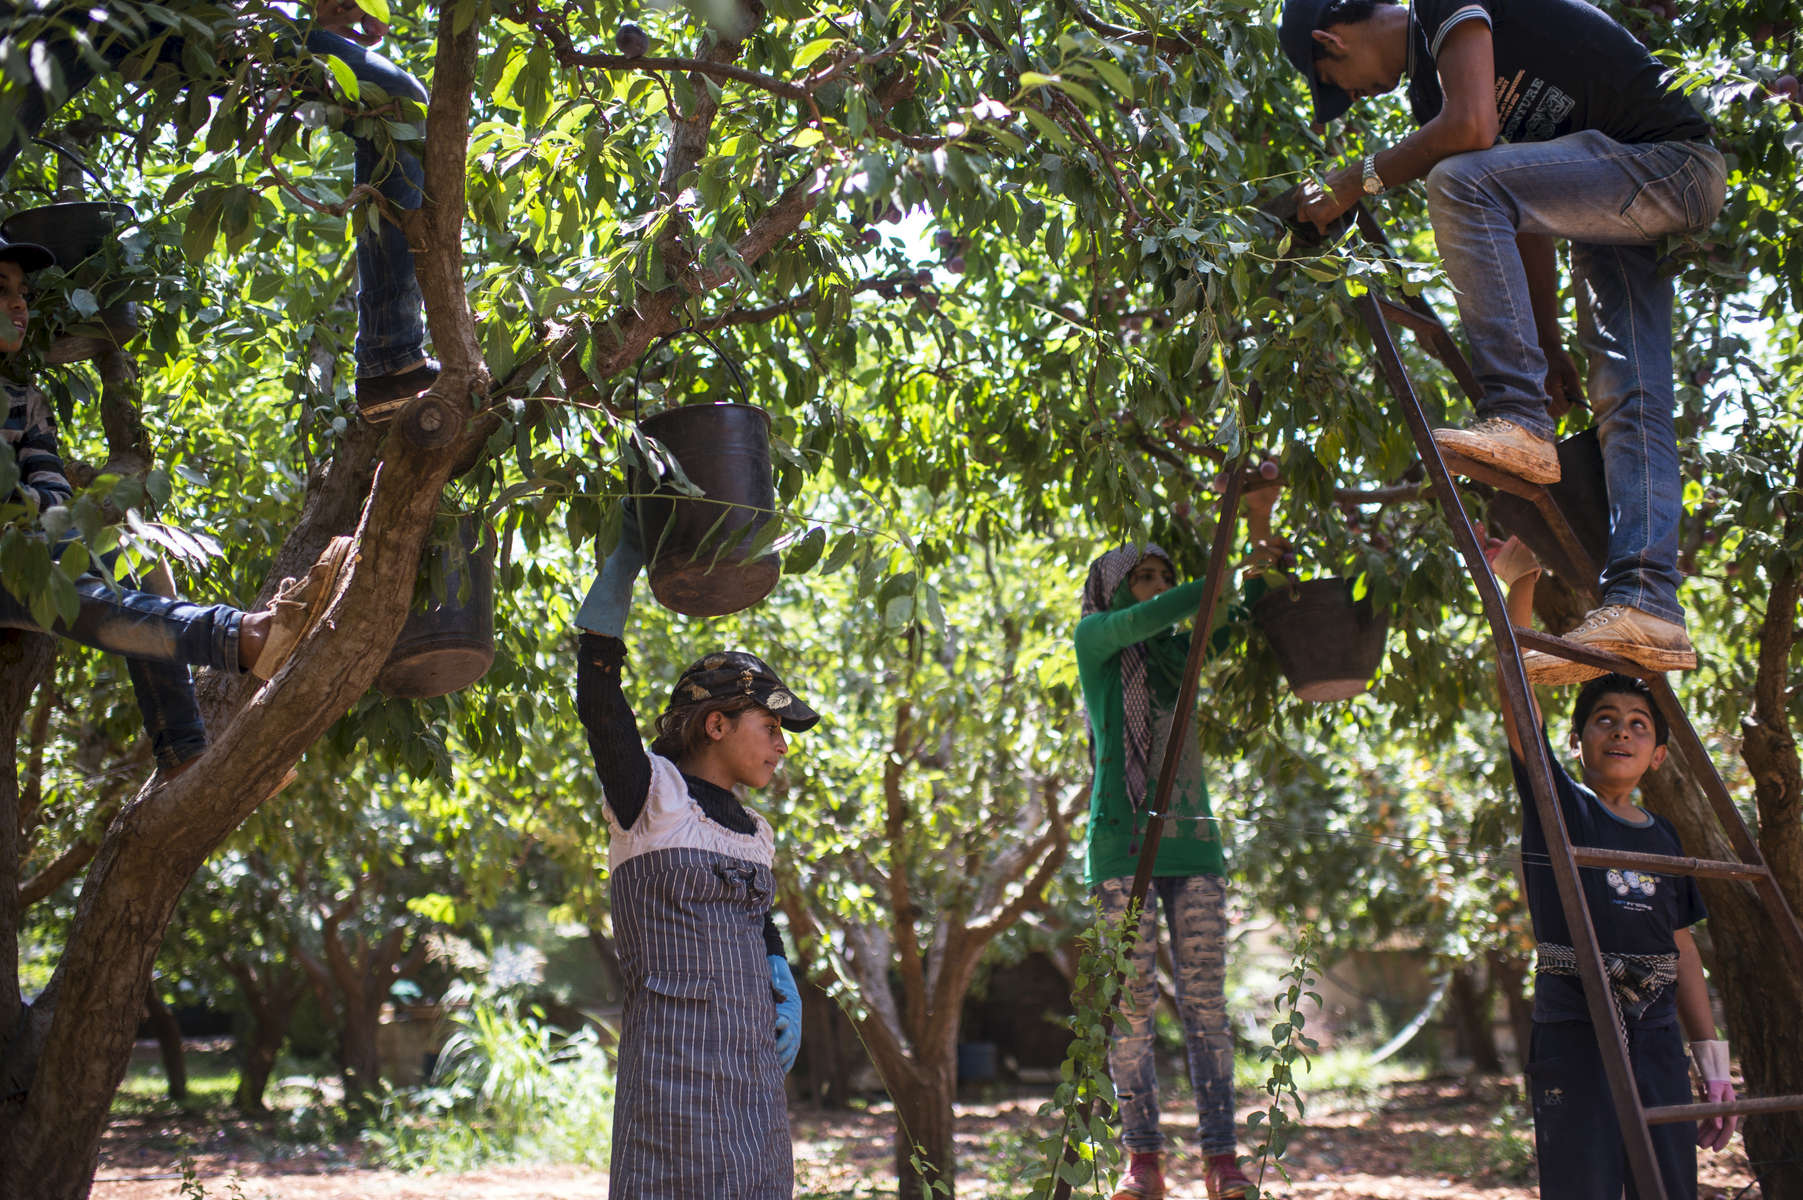 Hanaa picks plums from before dawn through the early afternoon in an orchard, where she started before dawn and finished around 2pm, along with other Syrian refugees from her informal tented settlement in the Bekaa Valley, between the city of Zahle and Baalbak, in Lebanon, August 3, 2015.  Hanaa and her family fled Syria in 2011 at the beginning of the Syrian civil war, and moved to this settlement two years ago, along with other Syrian refugees from Hasaka and the surrounding areas. Hanaa and other children in the settlement work for up to ten hours a day in agricultural lands owned by Lebanese in the area, and earn the equivalent of $5. per day.